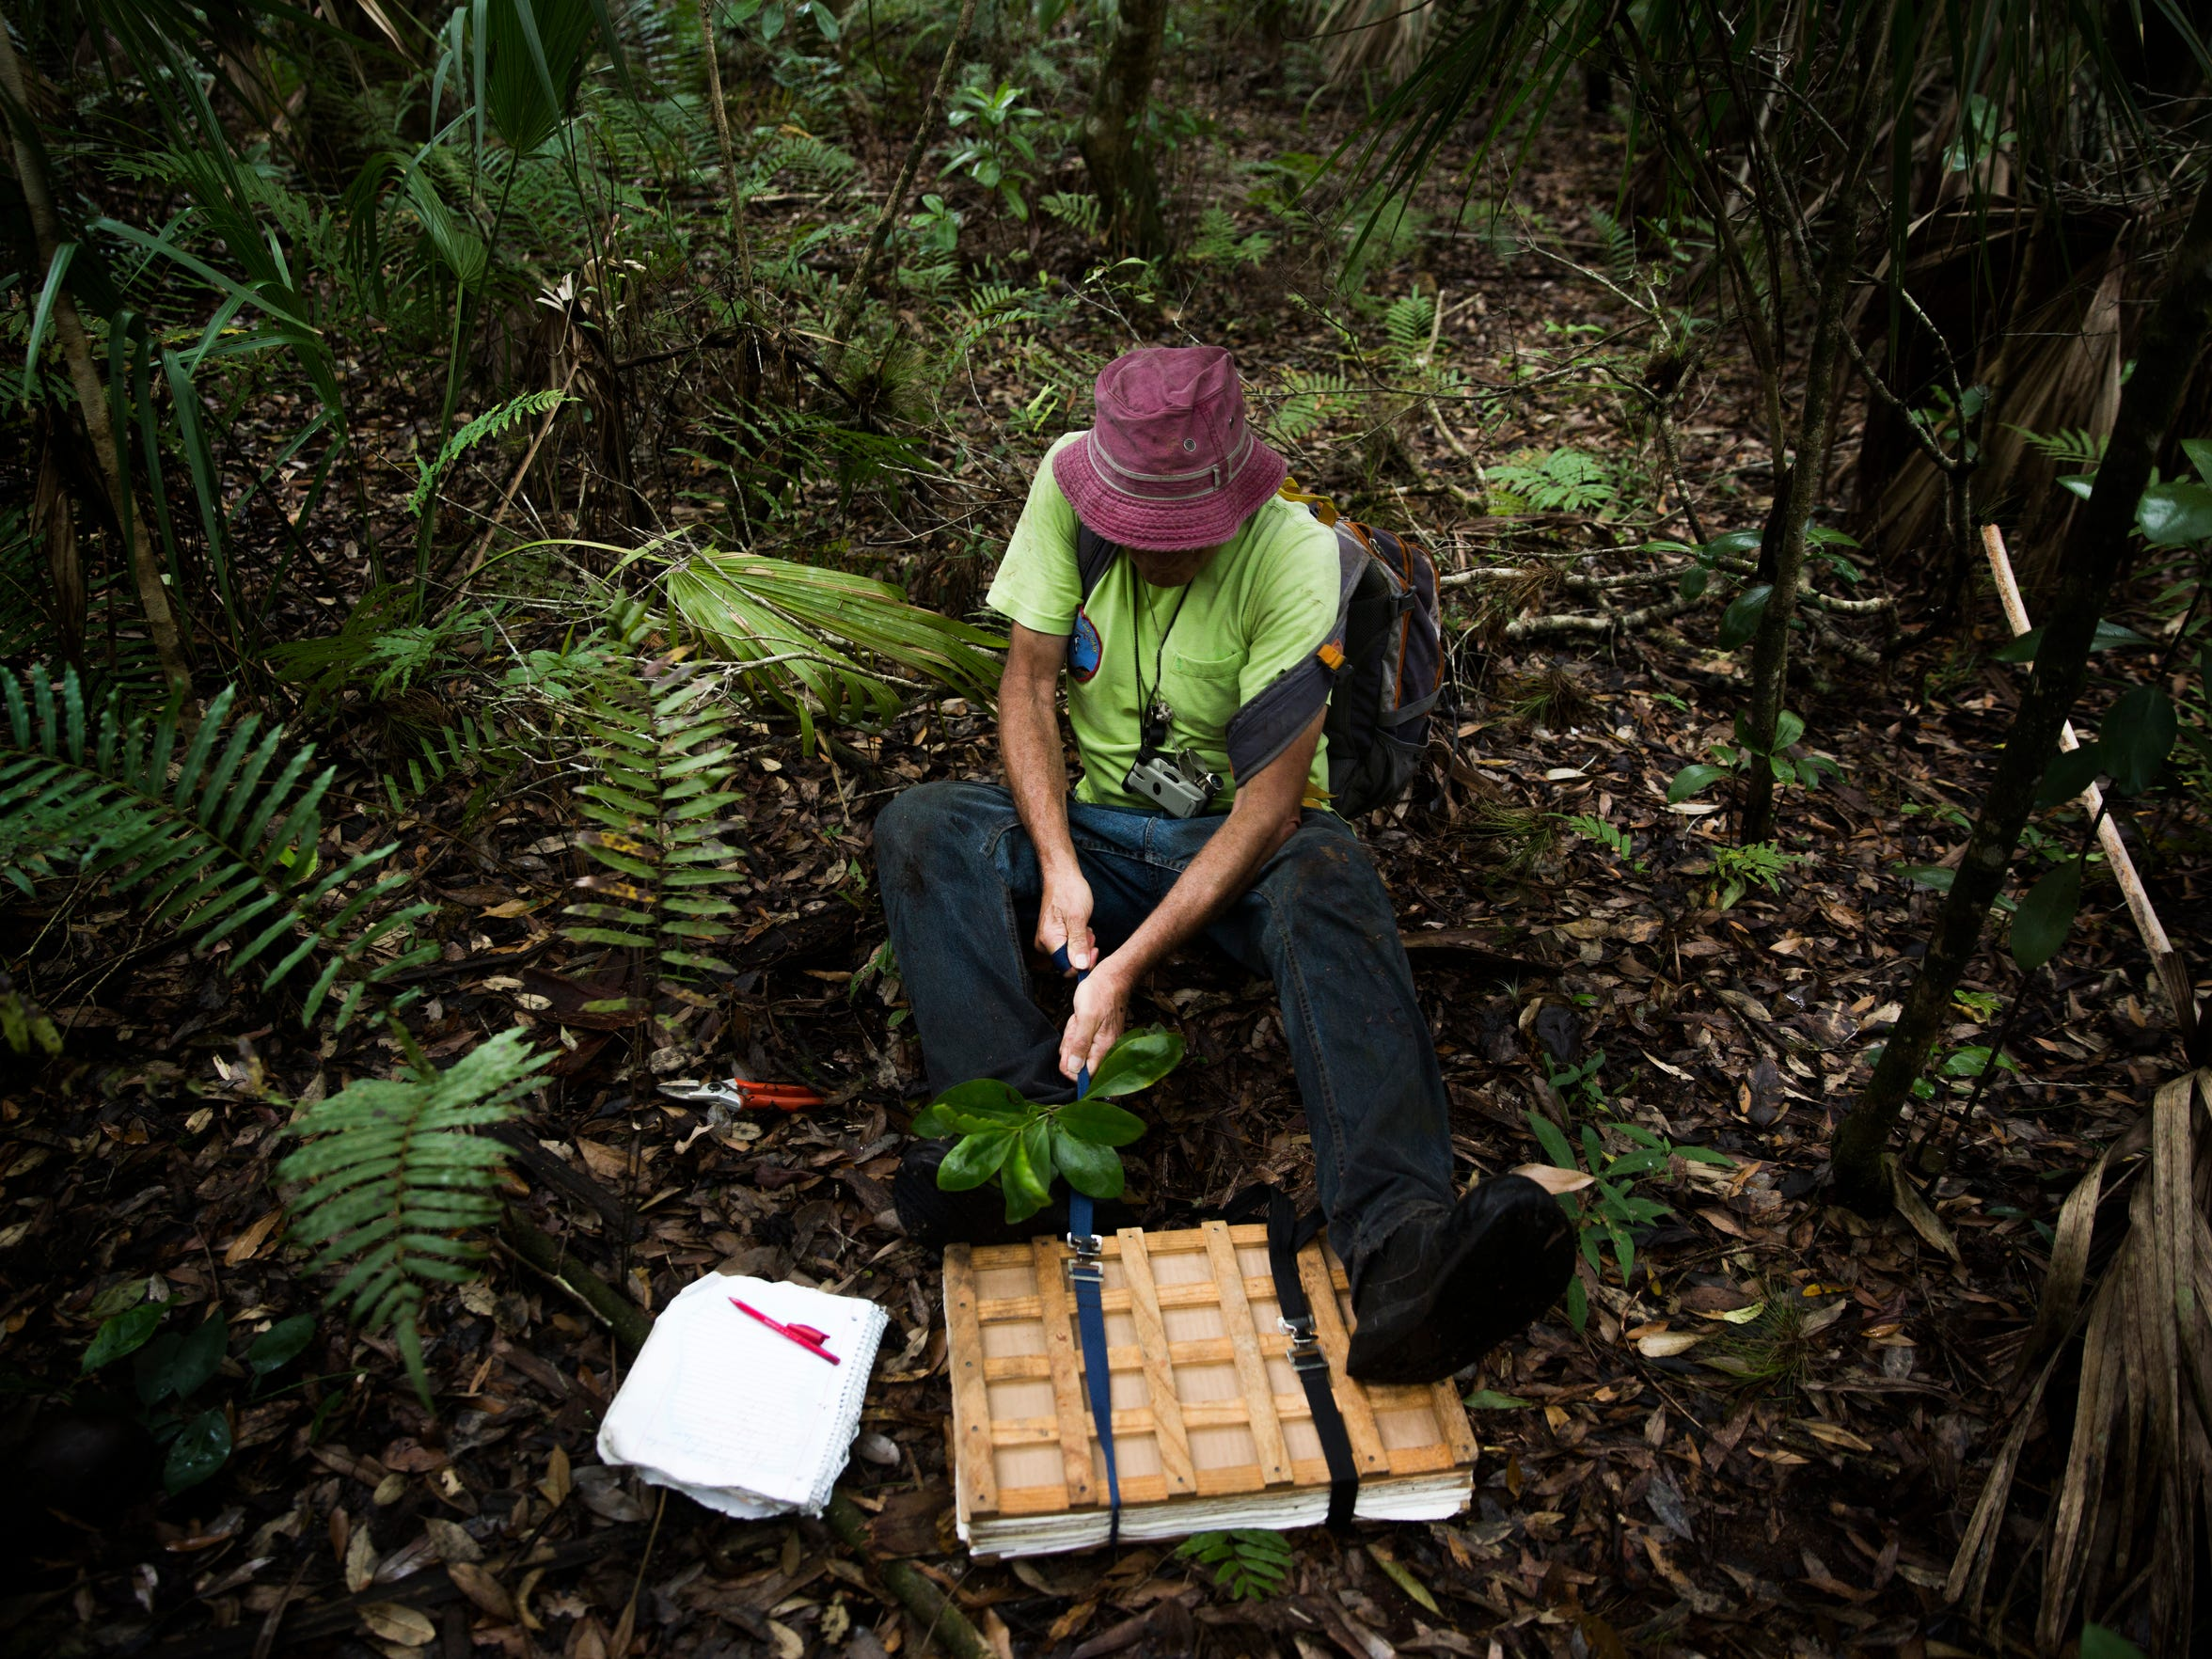 George Wilder uses his entire body to close the ratchet straps on one of his plant presses on Friday, May 5, 2017, at Corkscrew Swamp Sanctuary in Golden Gate Estates. Wilder collects specimens when working in the field and brings them back to his herbarium at the Naples Botanical Garden. His herbarium currently contains 40,229 specimens.